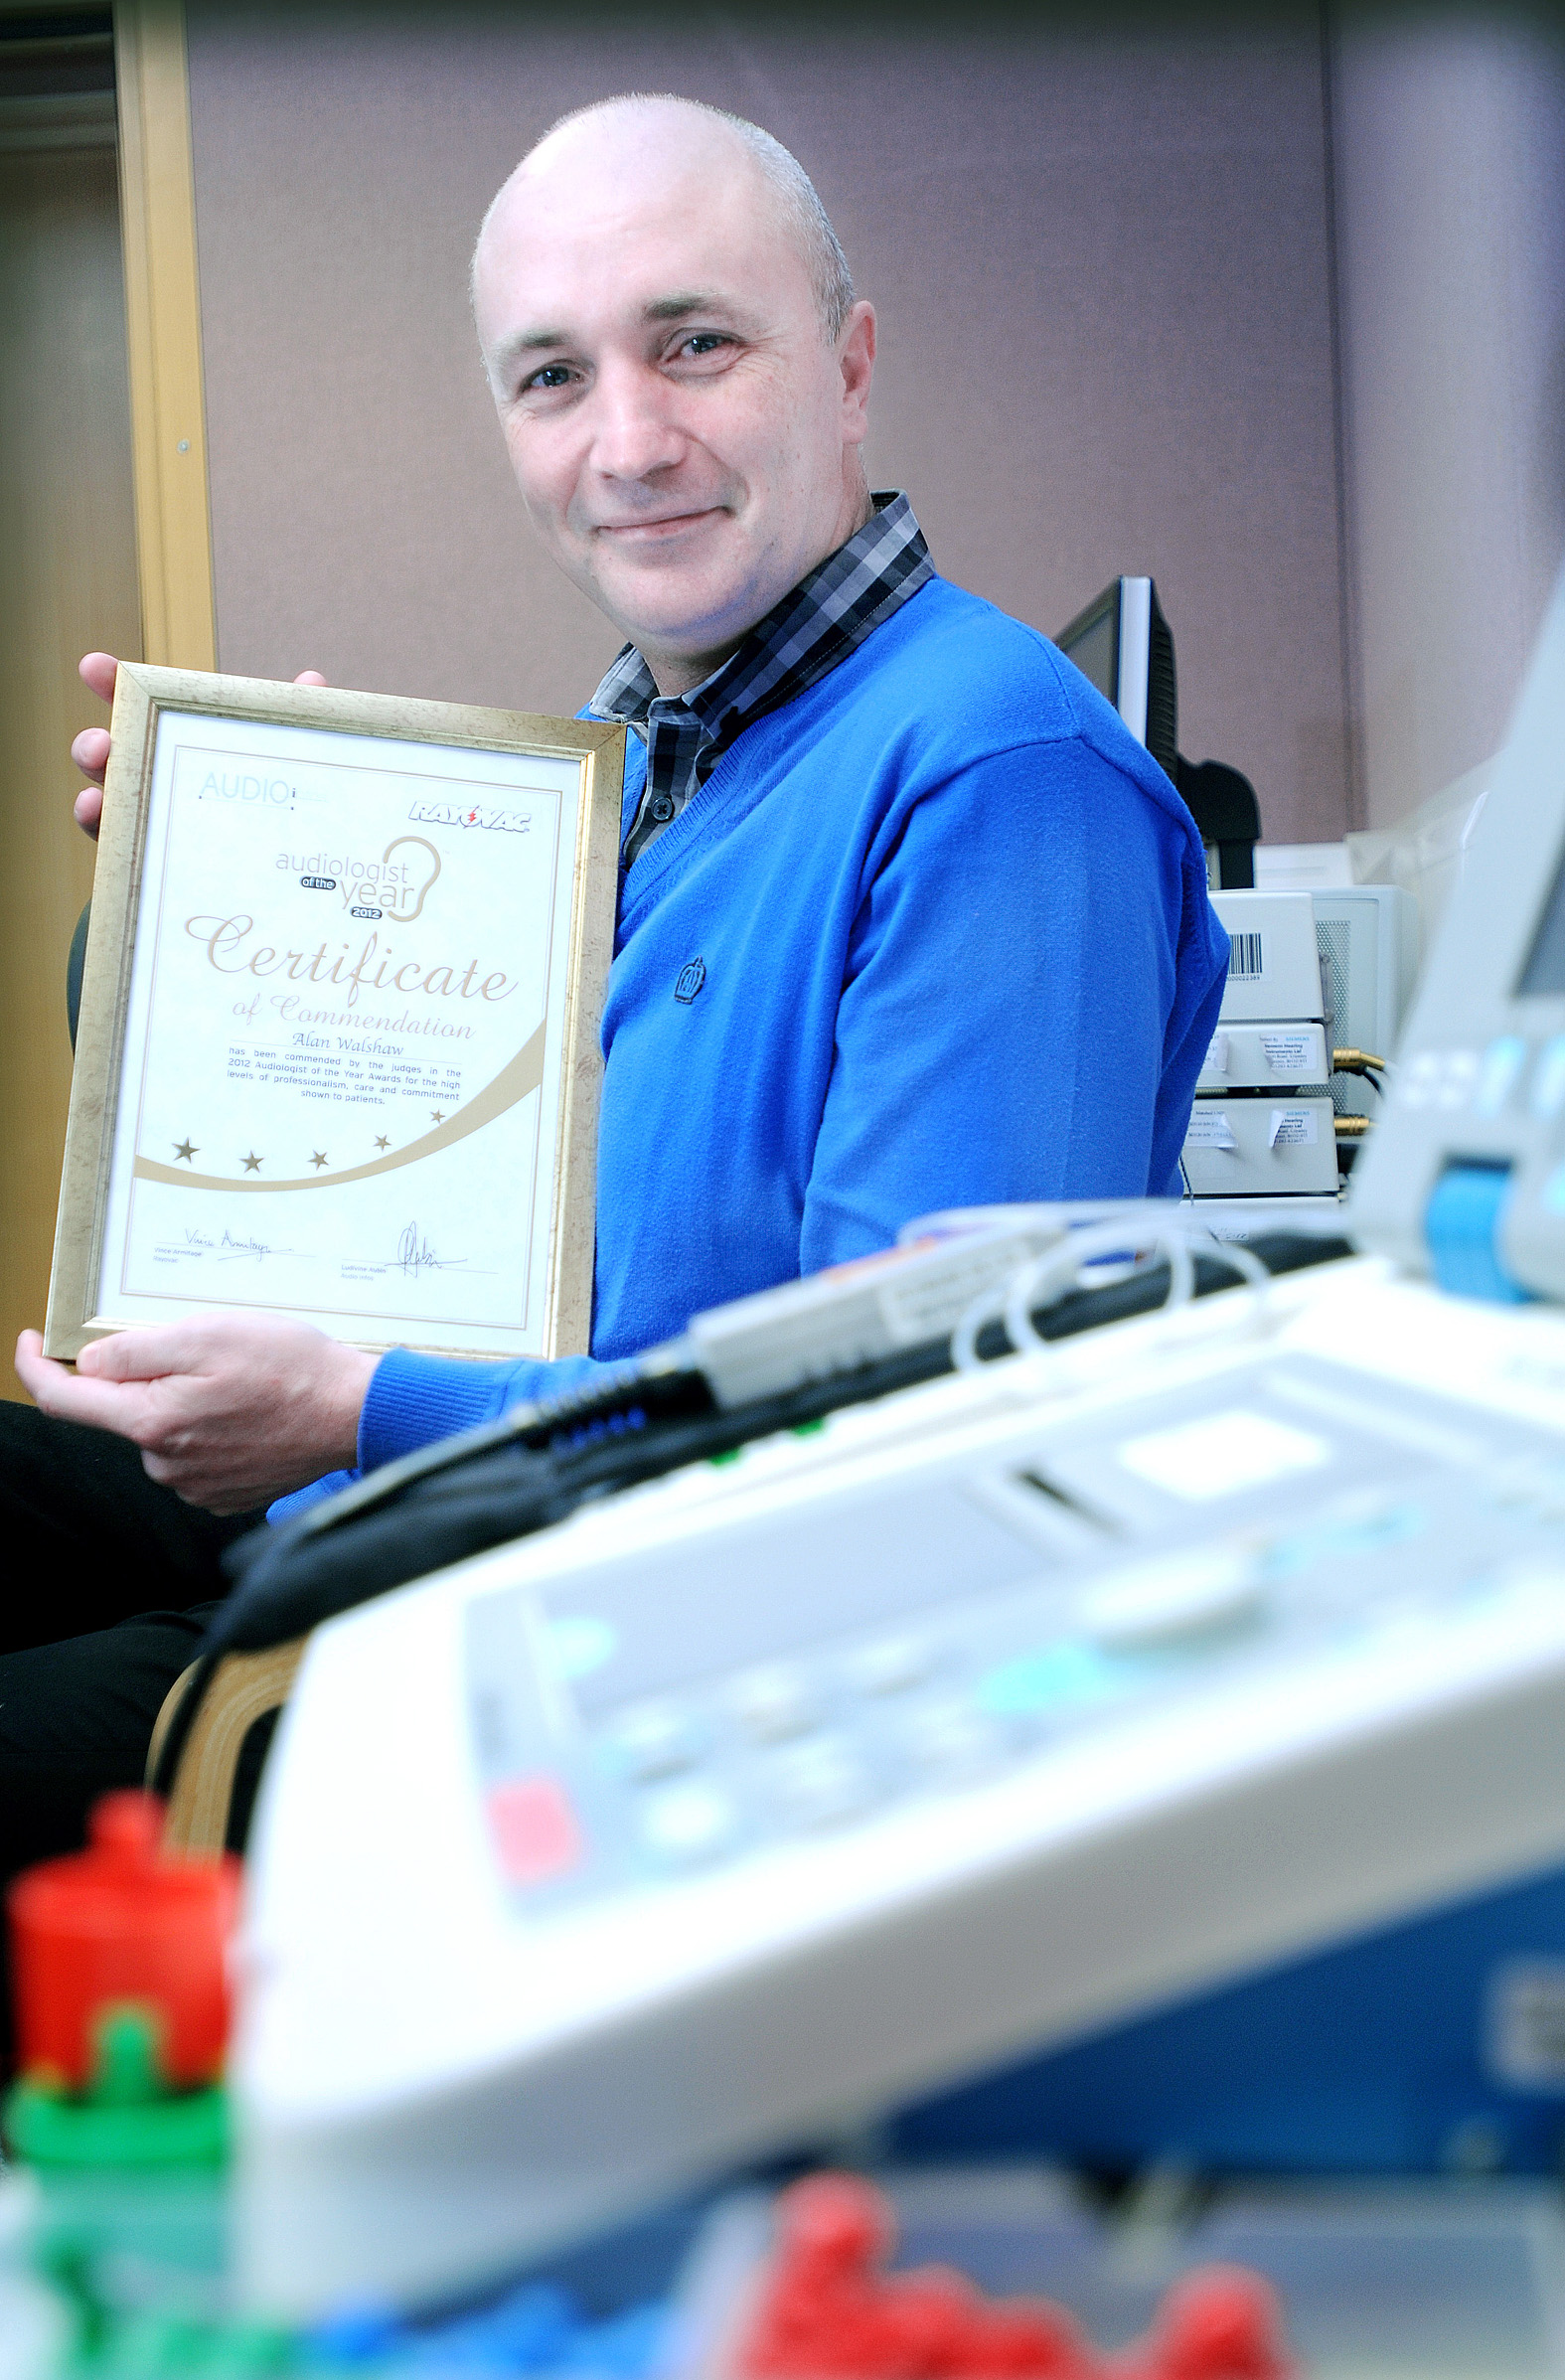 Airedale Hospital audiologist, Alan Walshaw, has received a fifth accolade in the UK Audiologist of the Year awards